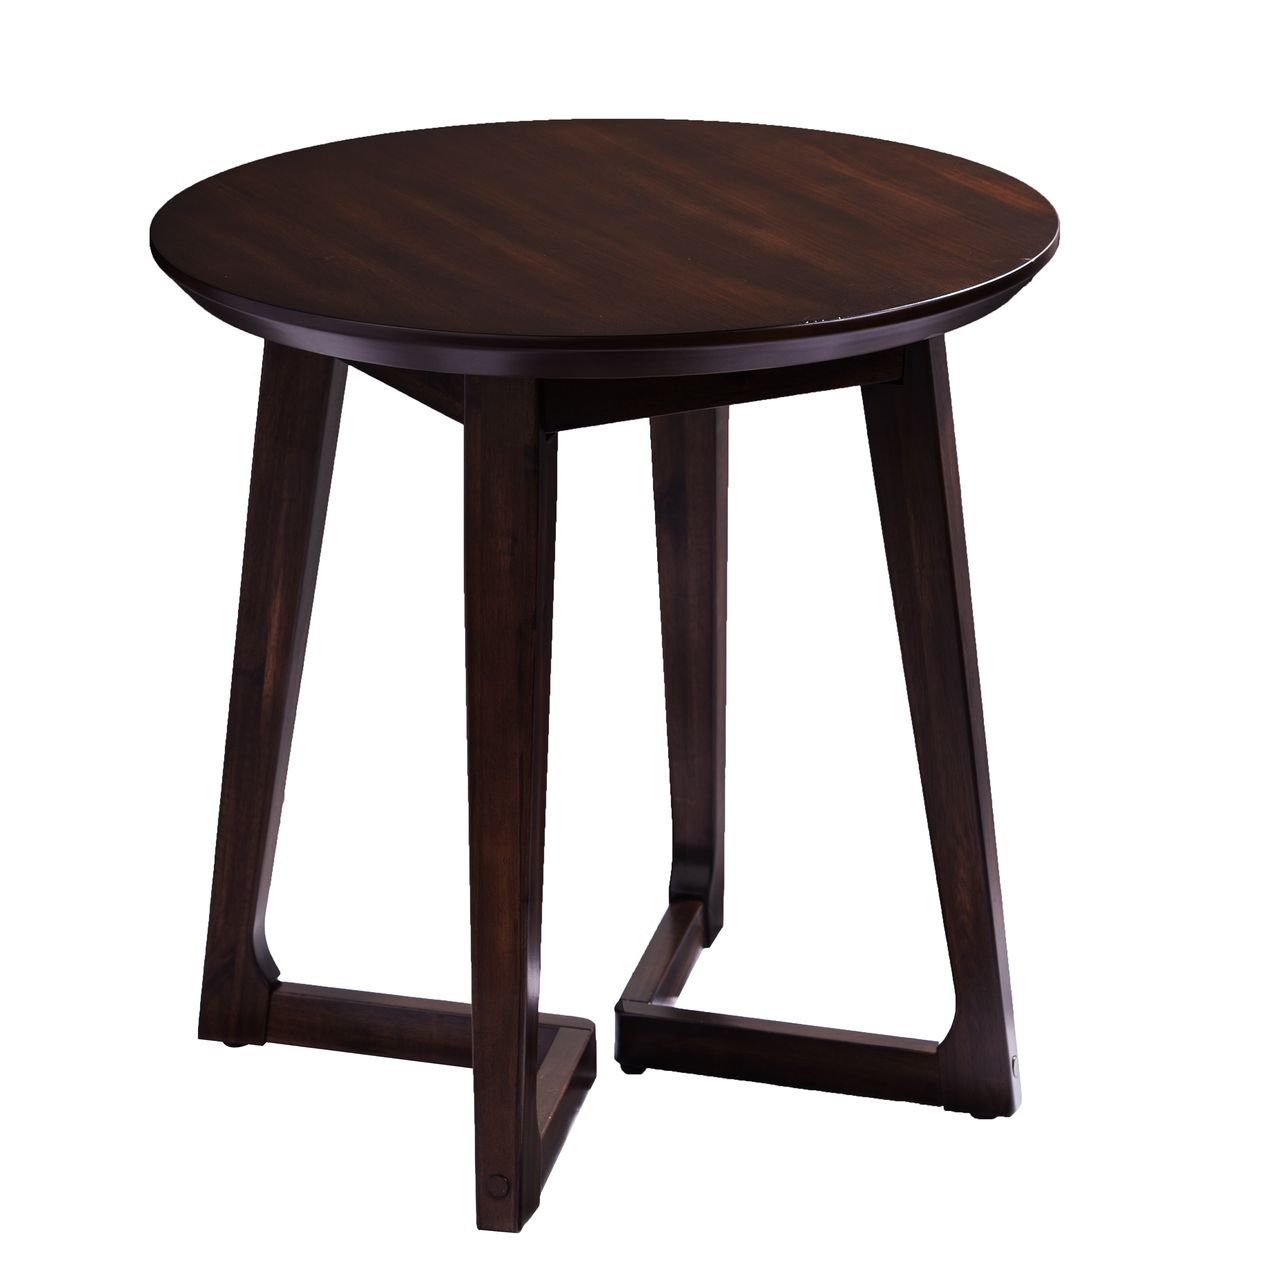 Holly & Martin Meckland Round End Table in Dark Walnut